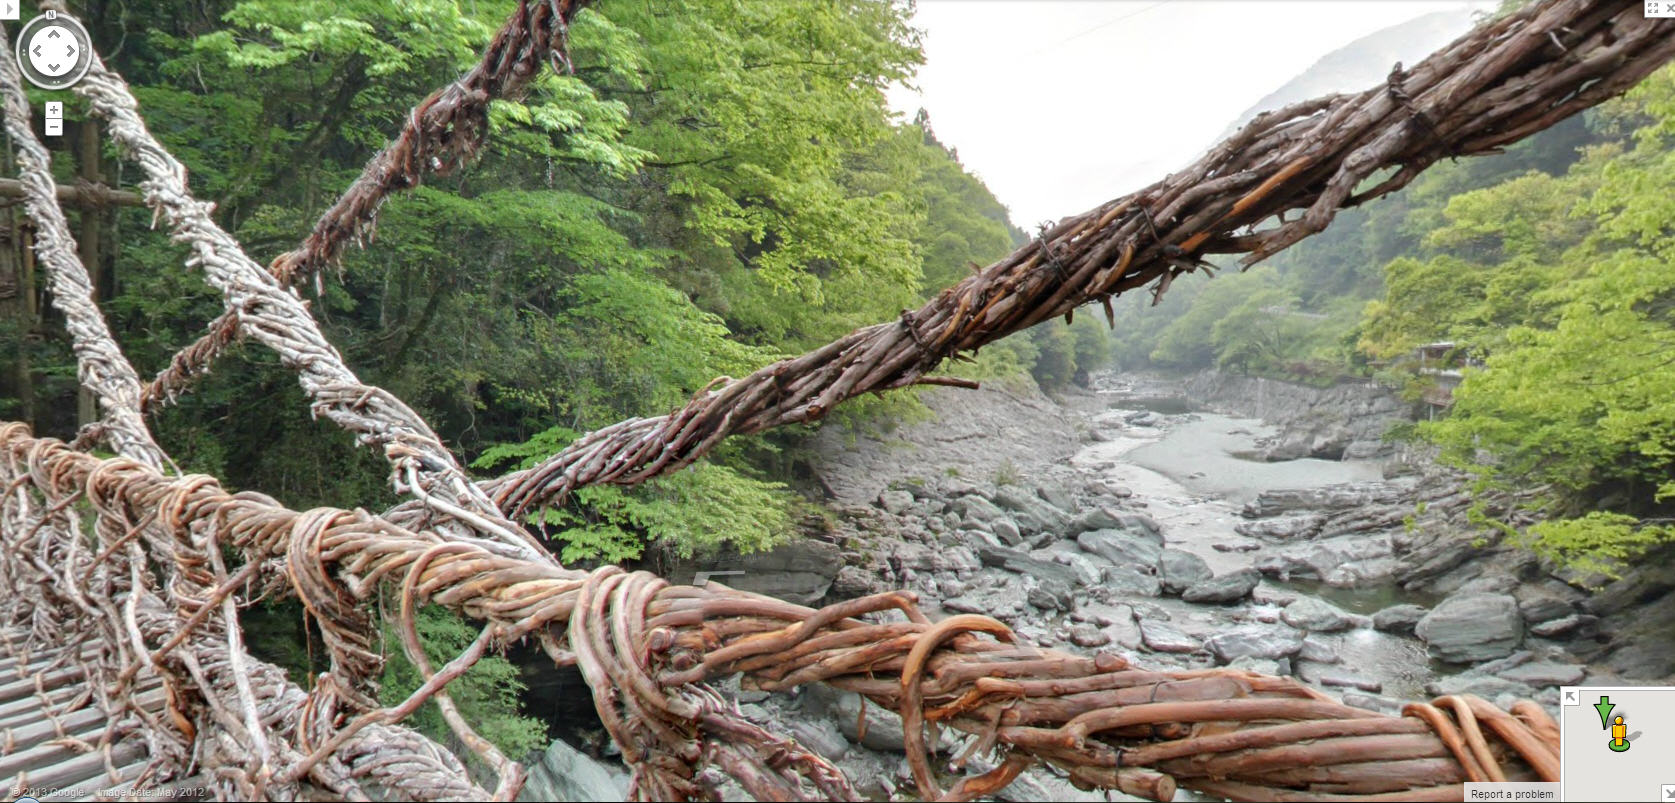 I can't believe this bridge is made out of sticks!